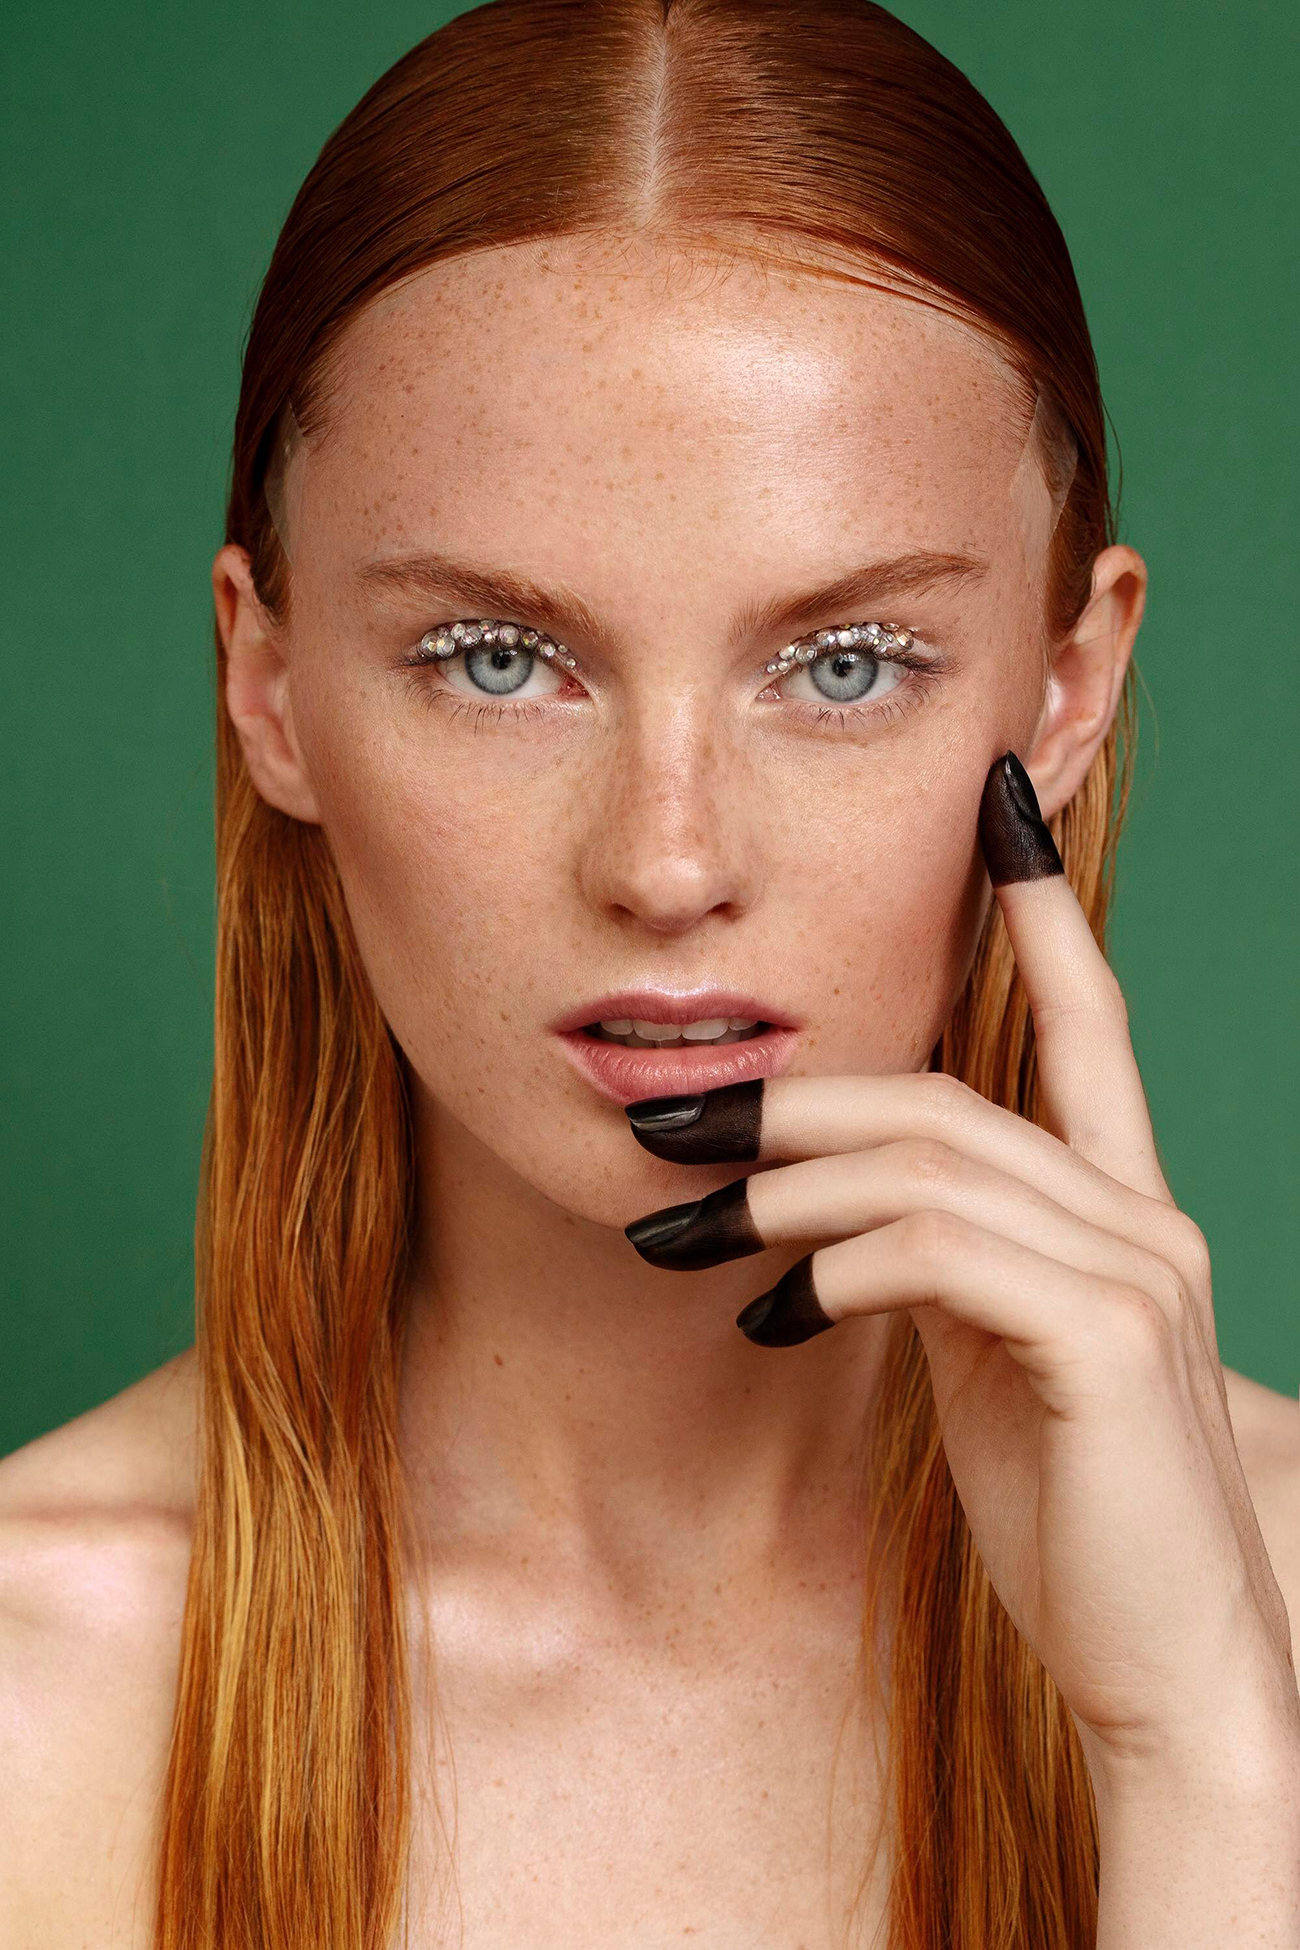 beauty editorial karin van berkel lotte concepts visagie